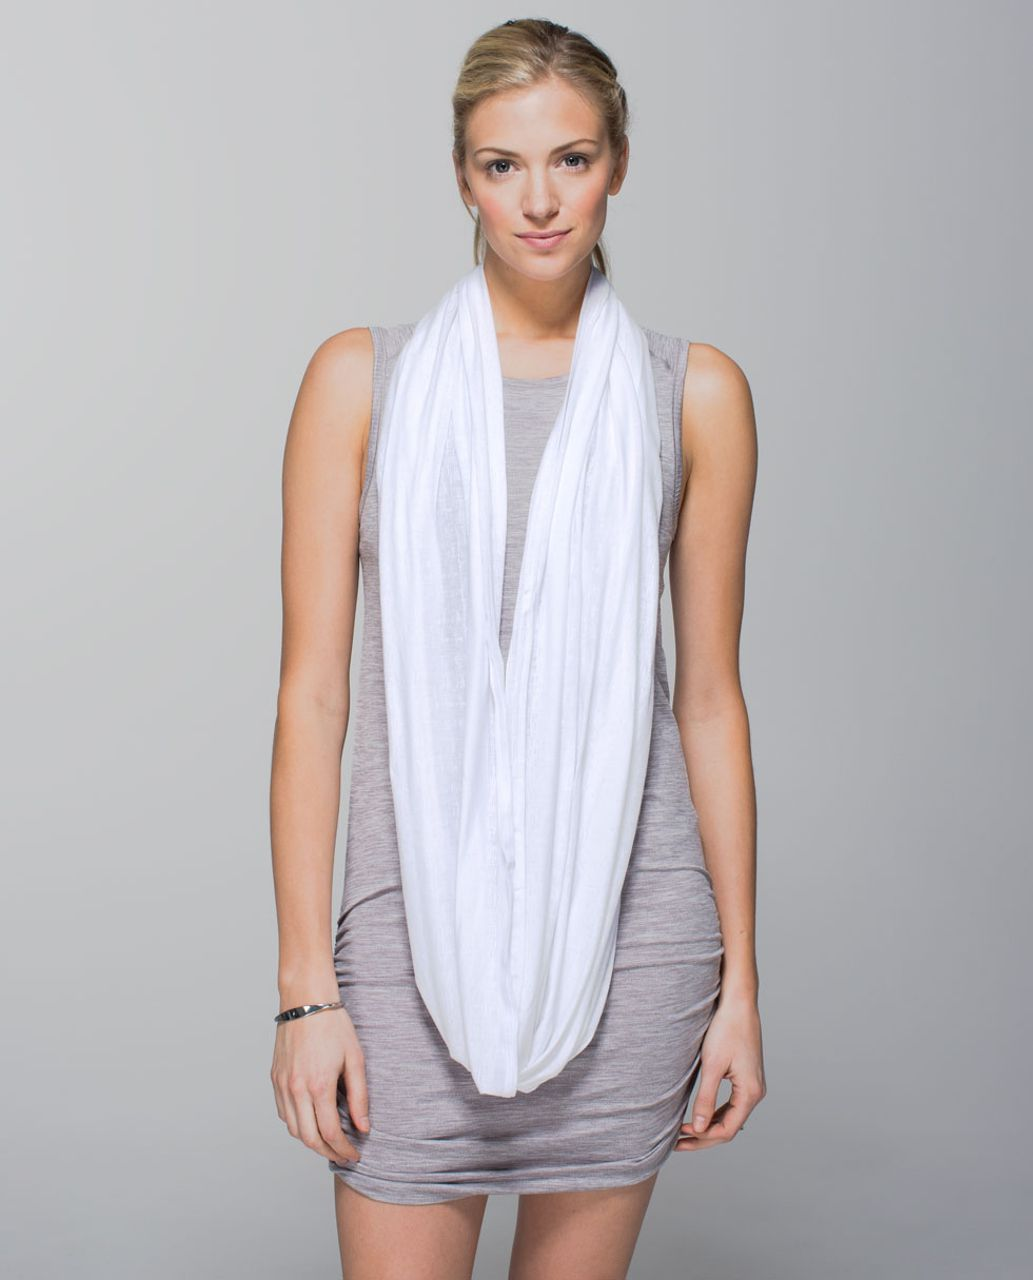 Lululemon Twist & Shout Scarf - Misty Stripe Burnout White